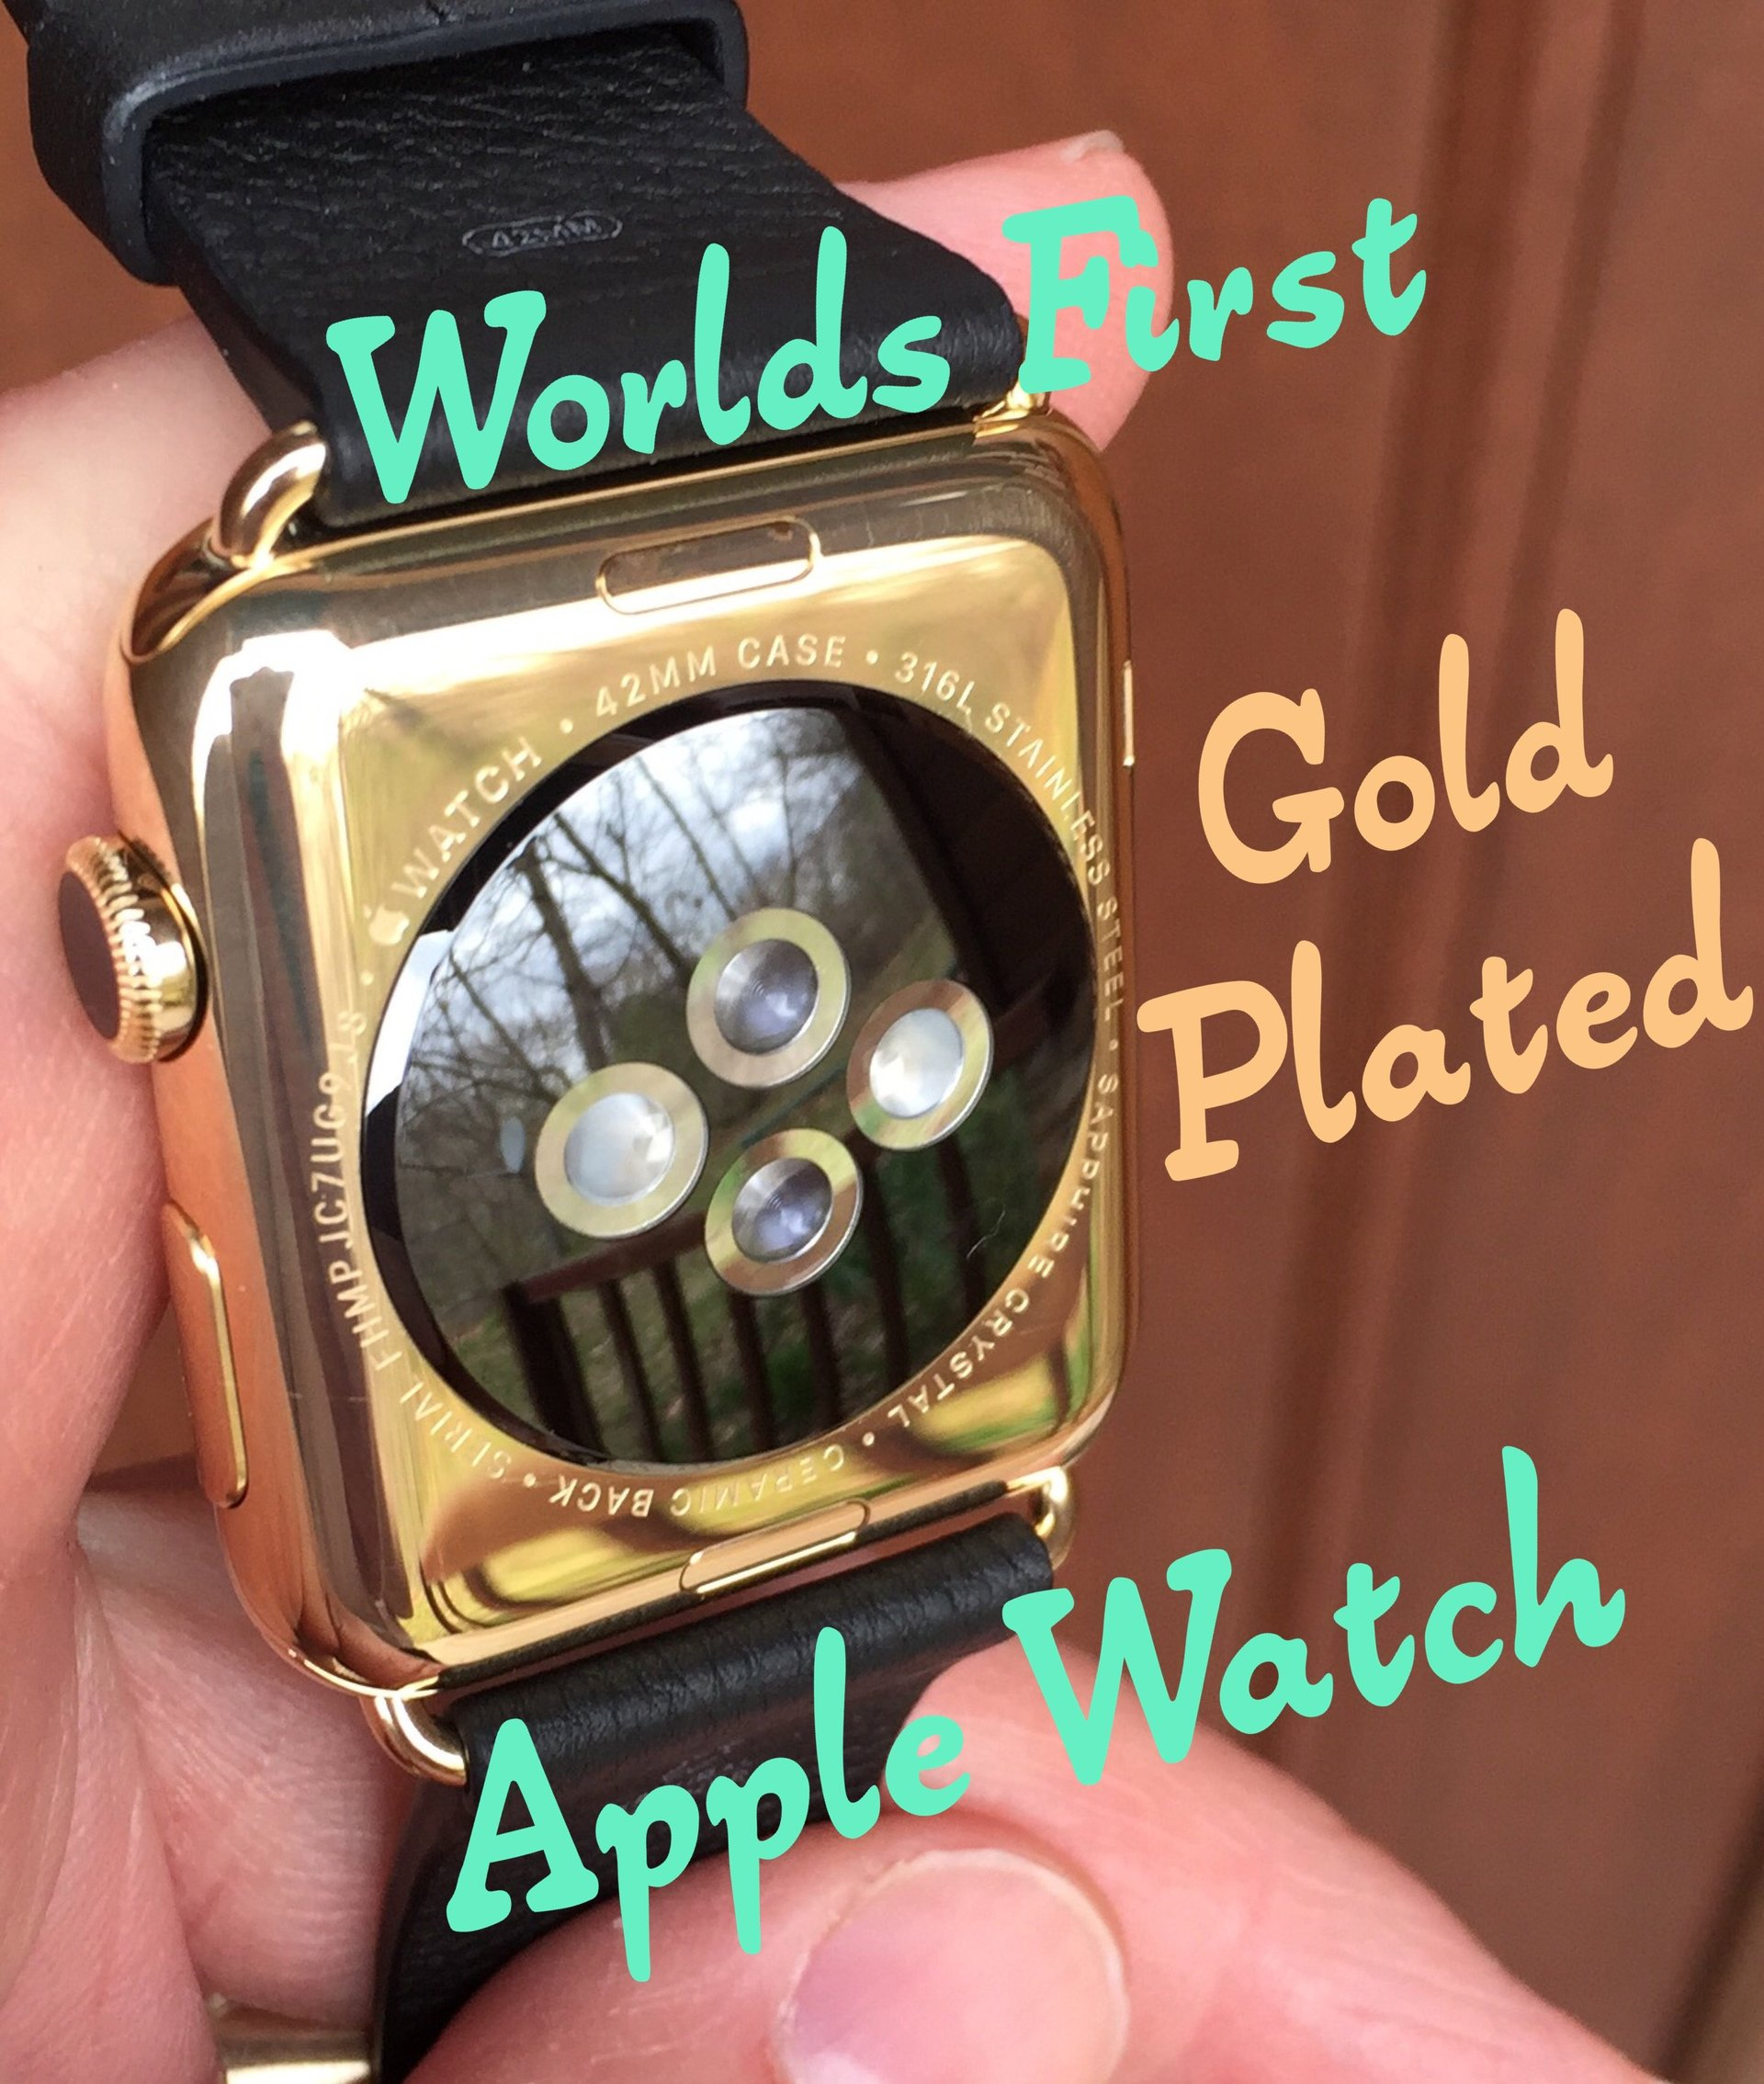 Worlds first Gold plated Apple watch The Time Preserve